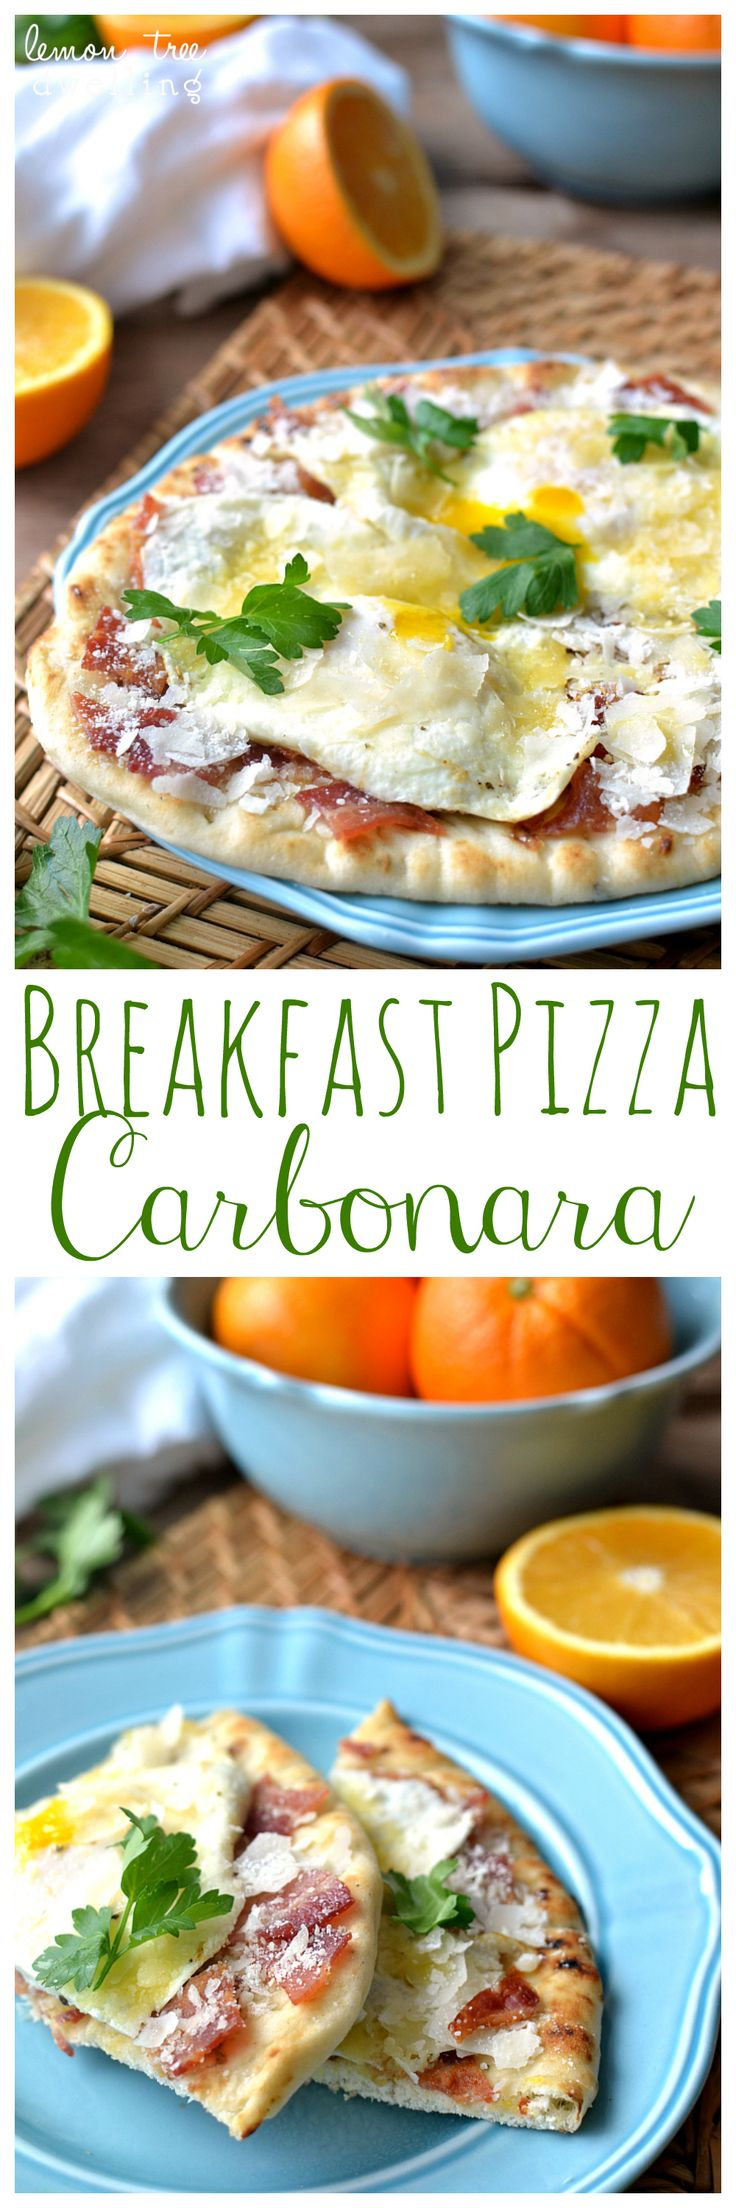 Breakfast Pizza Carbonara - just 10 minutes to make! This would be delicious for breakfast, lunch, or dinner!